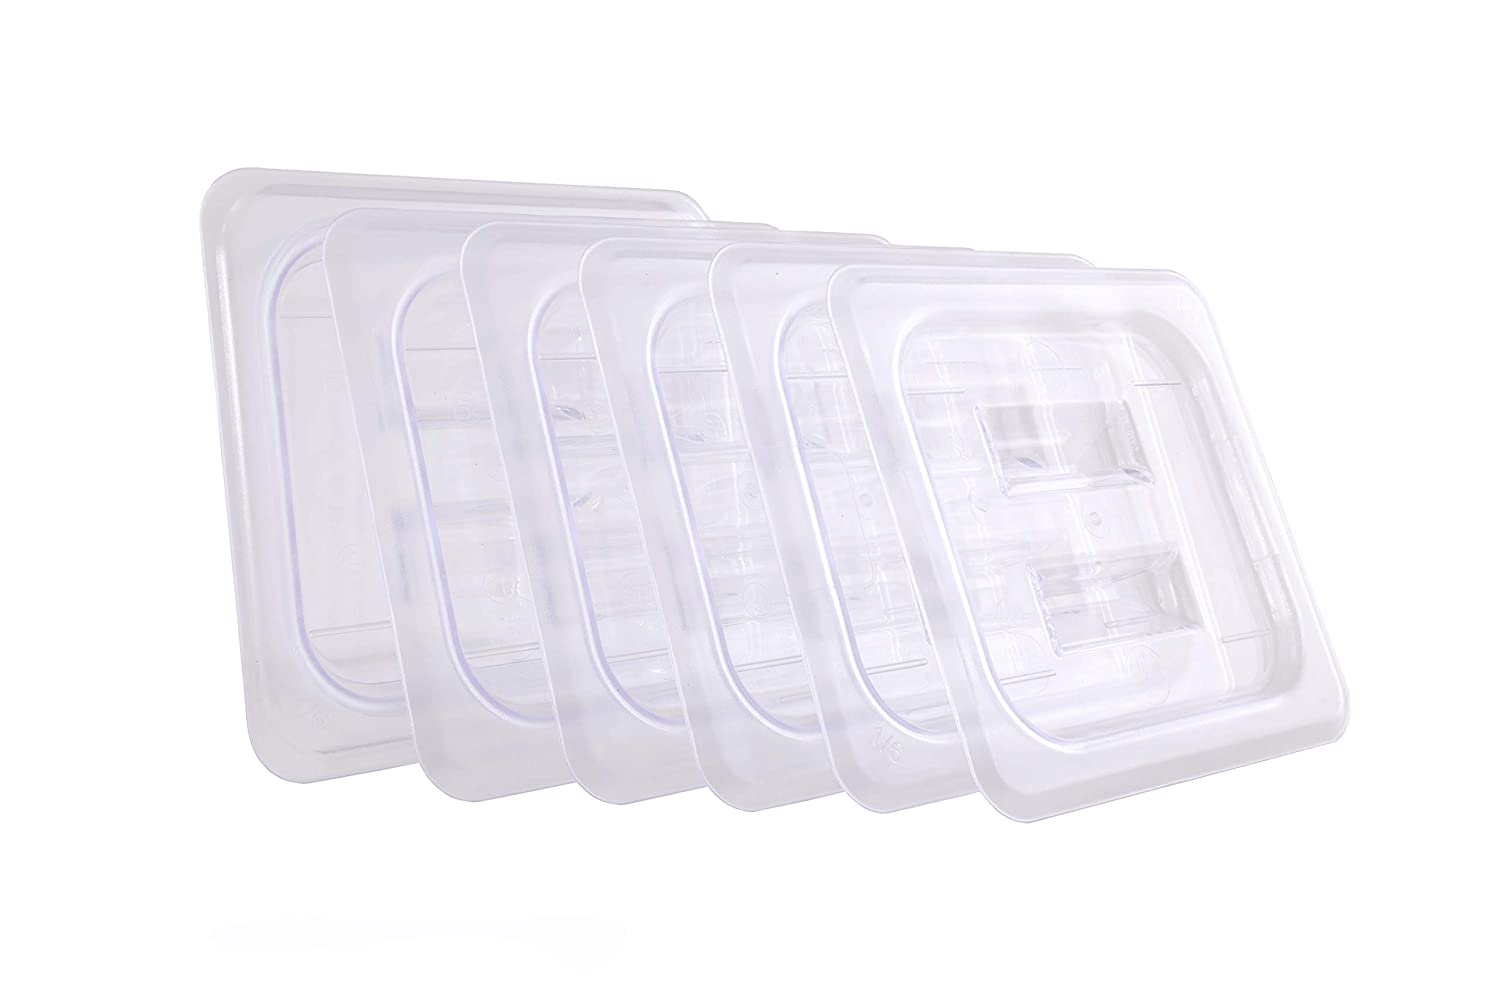 Hakka 1/6 Size Polycarbonate Food Pans Lid&Cover,Clear - Pack of 6